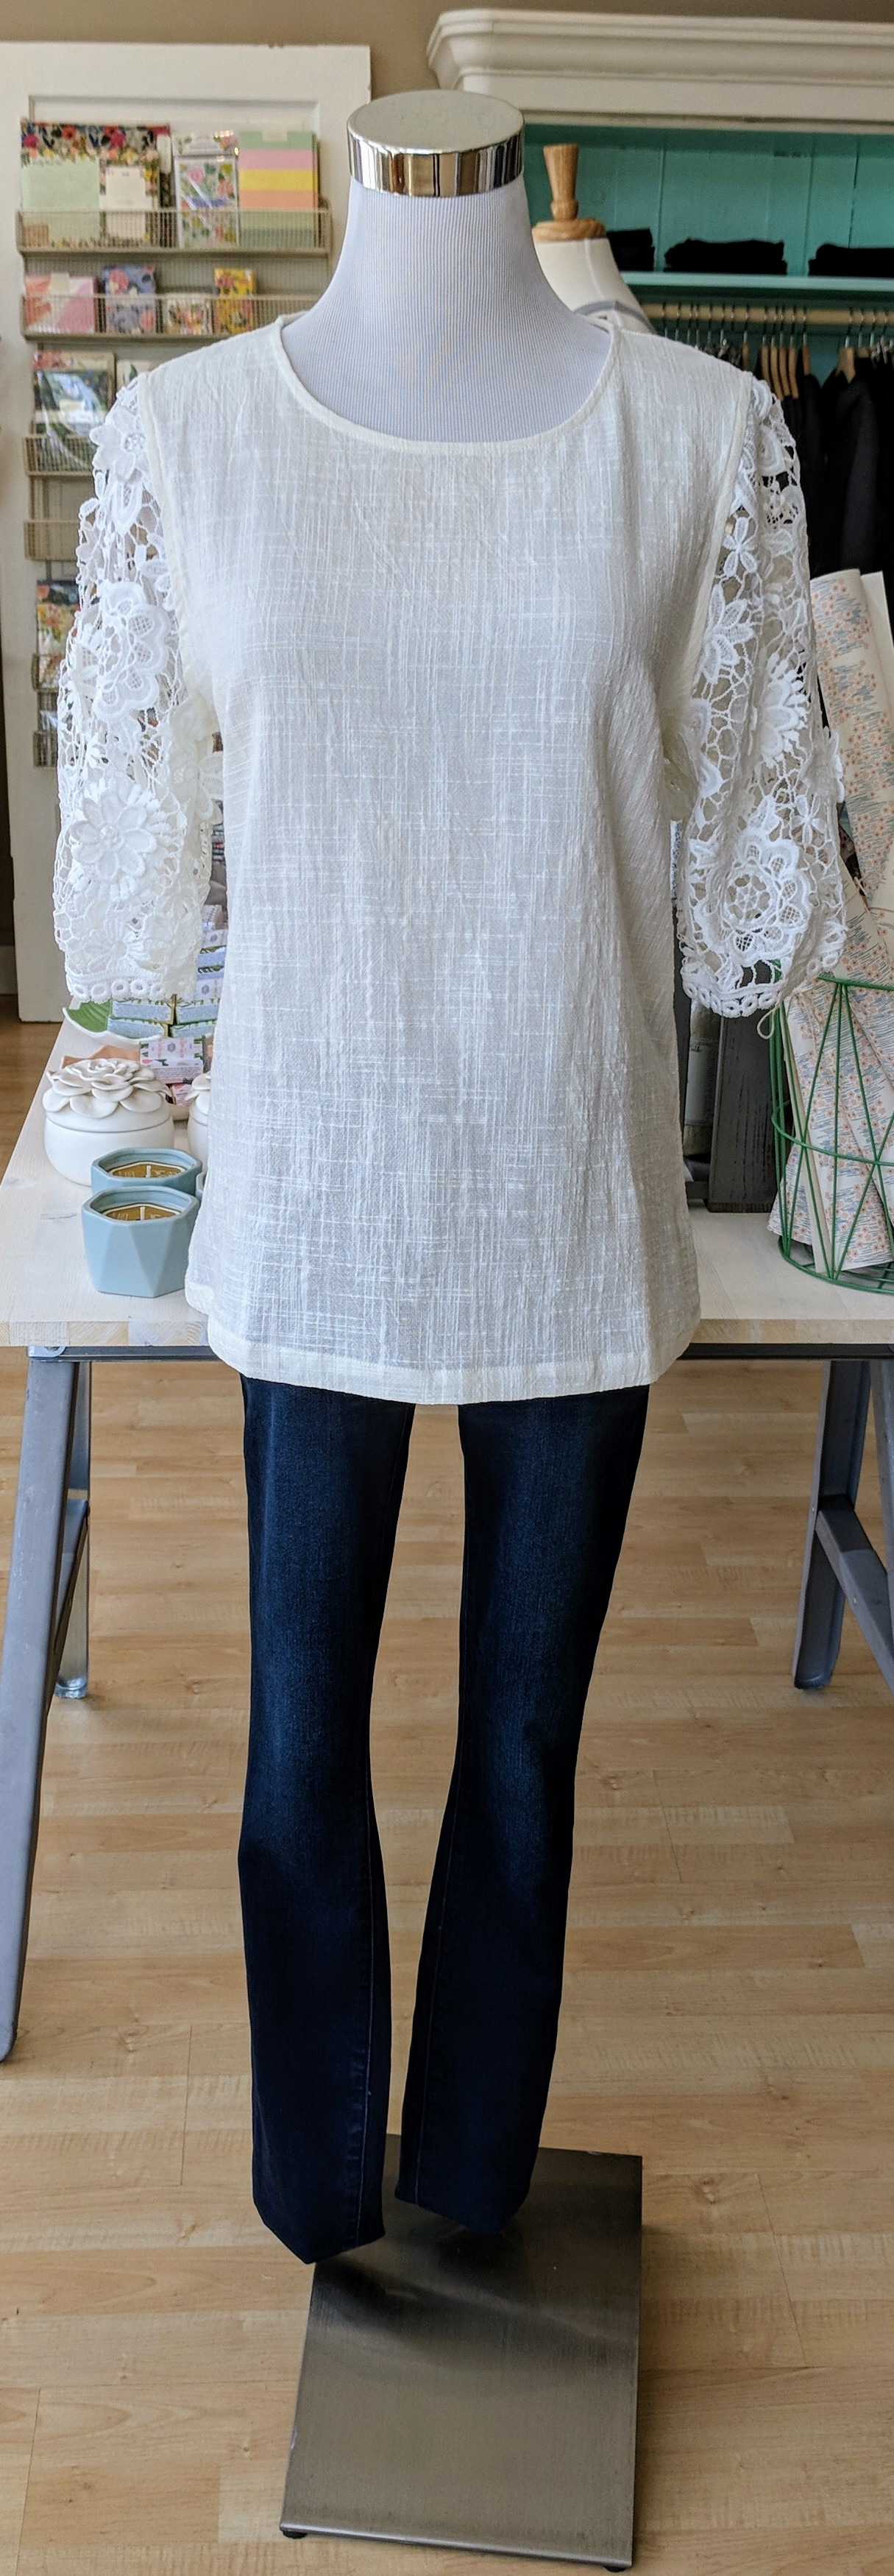 Ivory woven top with floral lace sleeves.